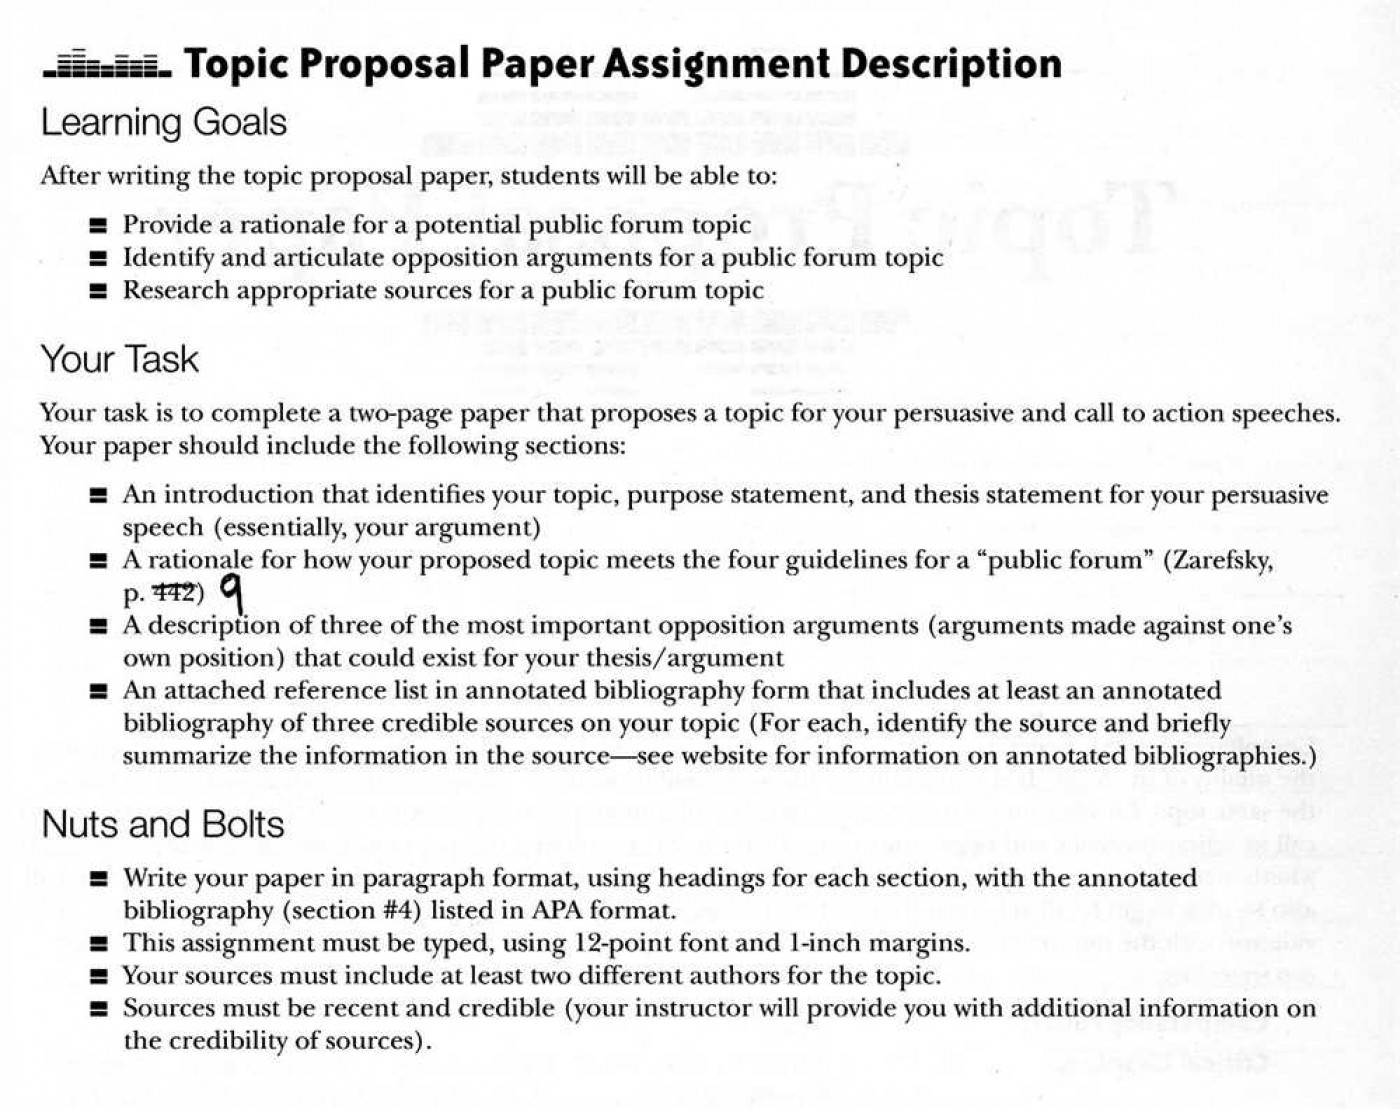 010 Ecology Research 8841976 Topics For Arguments Best Argument Papers Easy Argumentative Controversial 1400